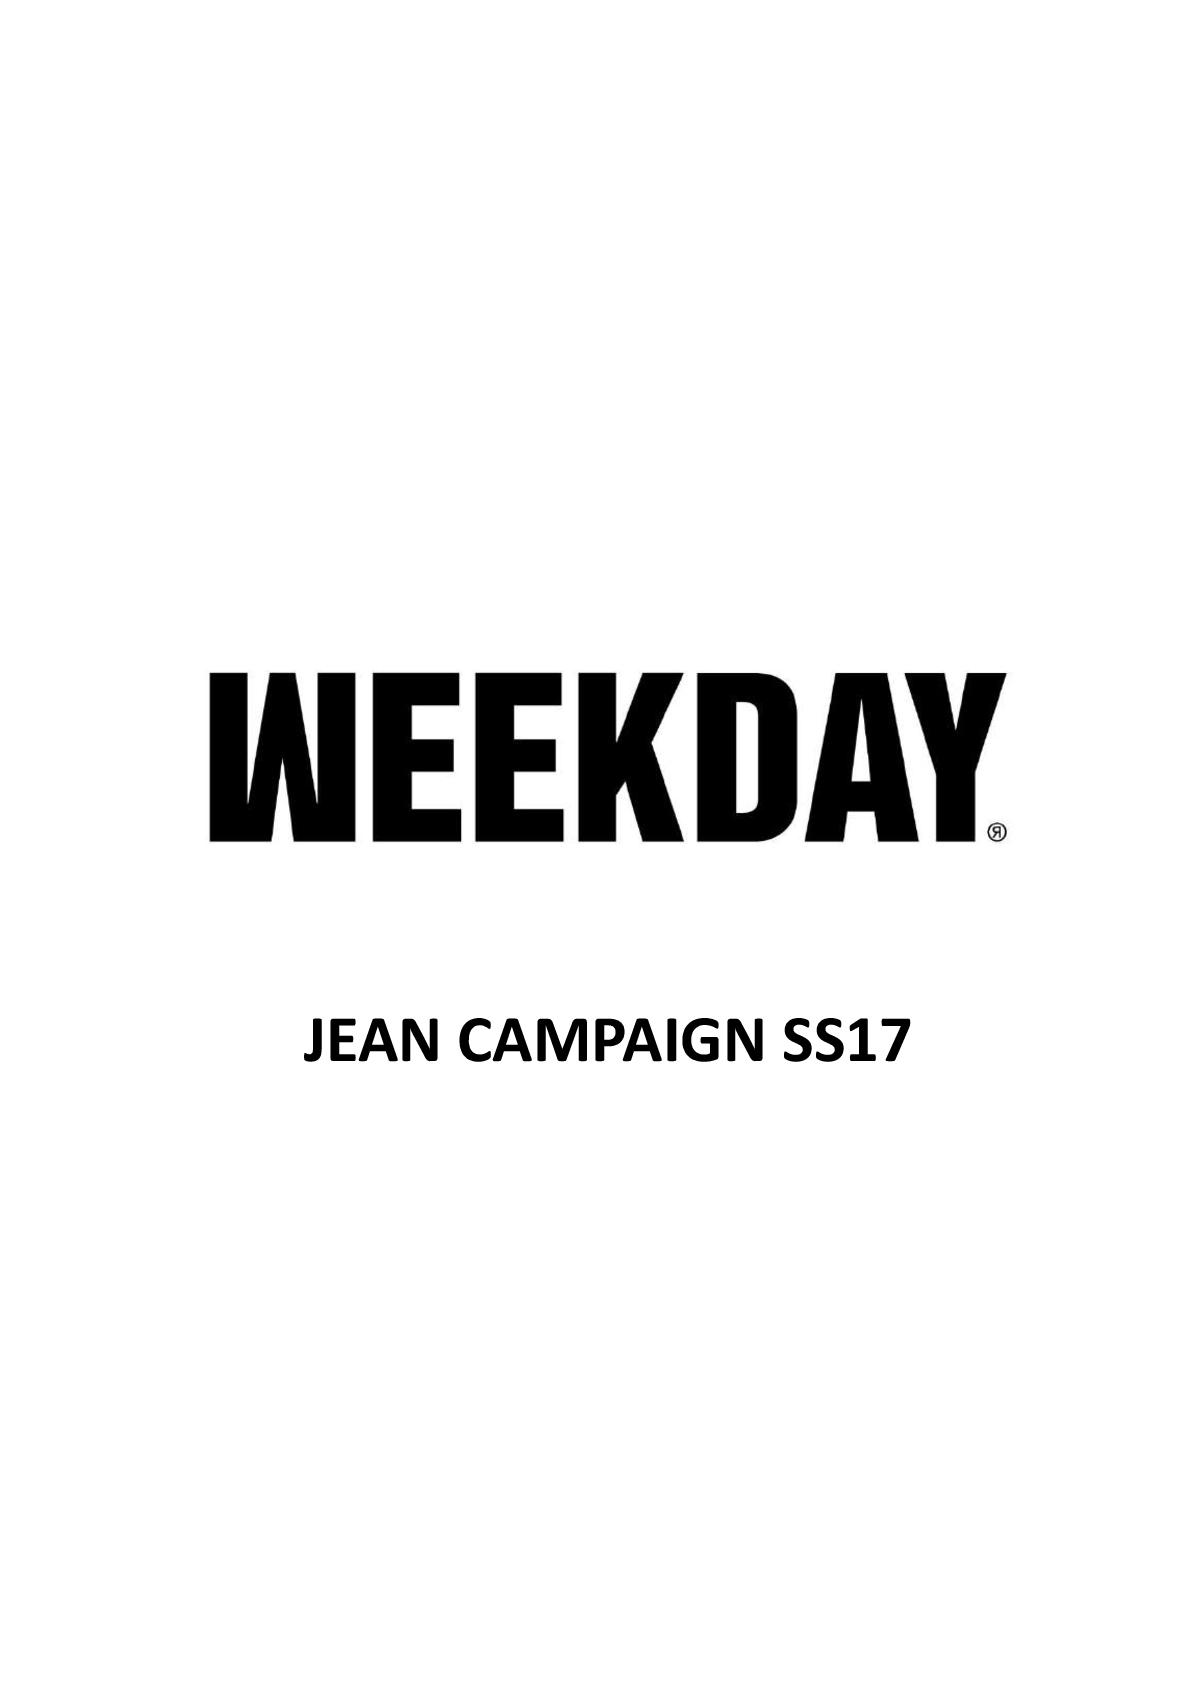 e9_weekday_ss17_lookbook_jean_campaign_low_res-page-001.jpg